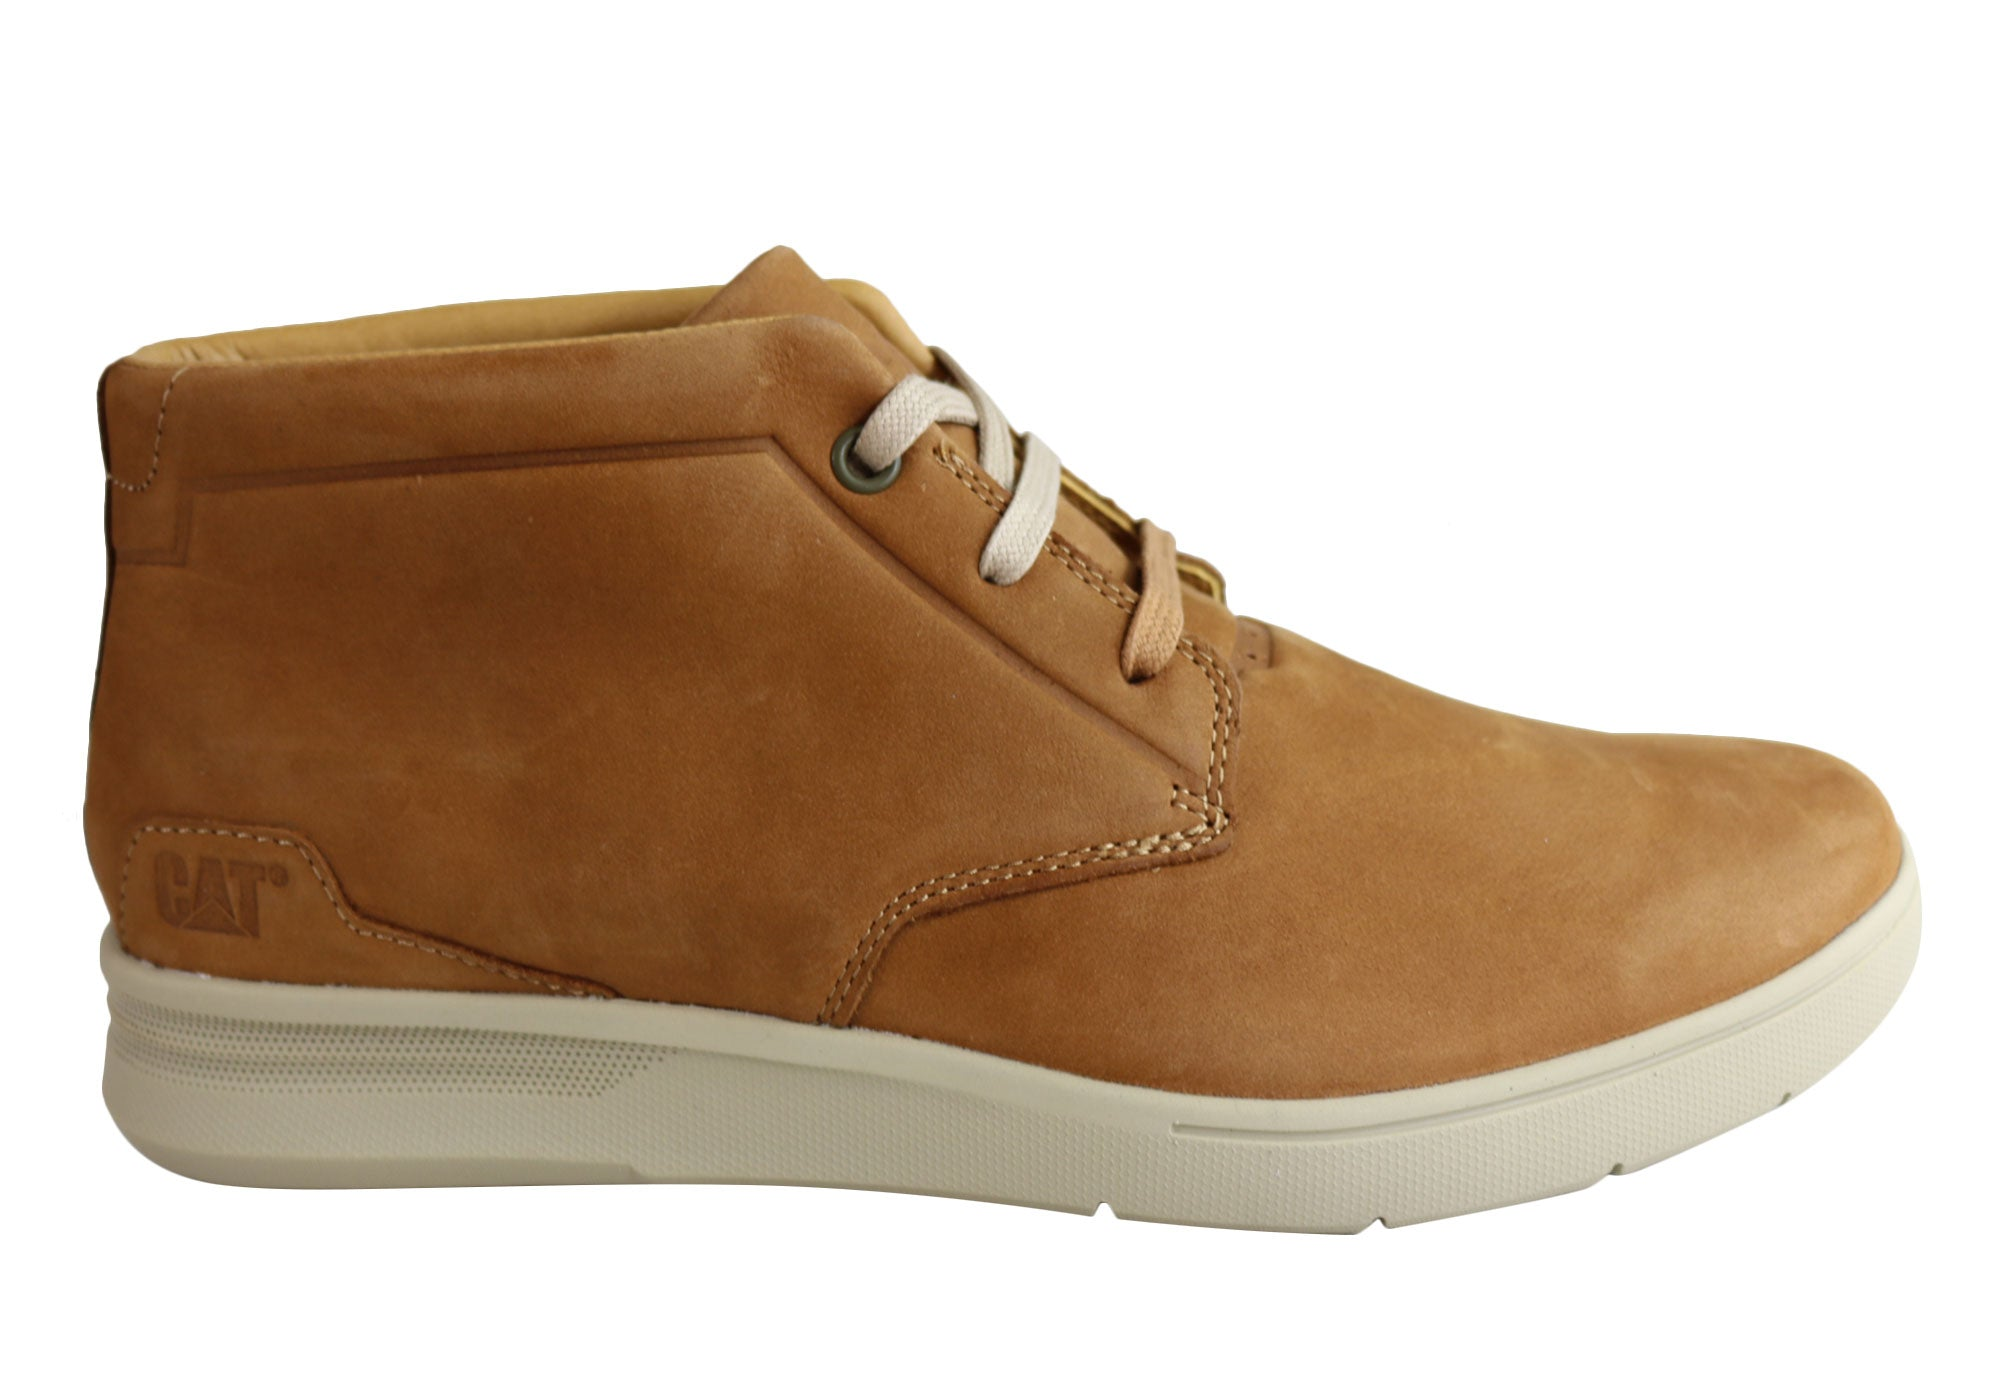 Brand-New-Caterpillar-Theorem-Mens-Lace-Up-Leather-Comfortable-Casual-Boots thumbnail 7